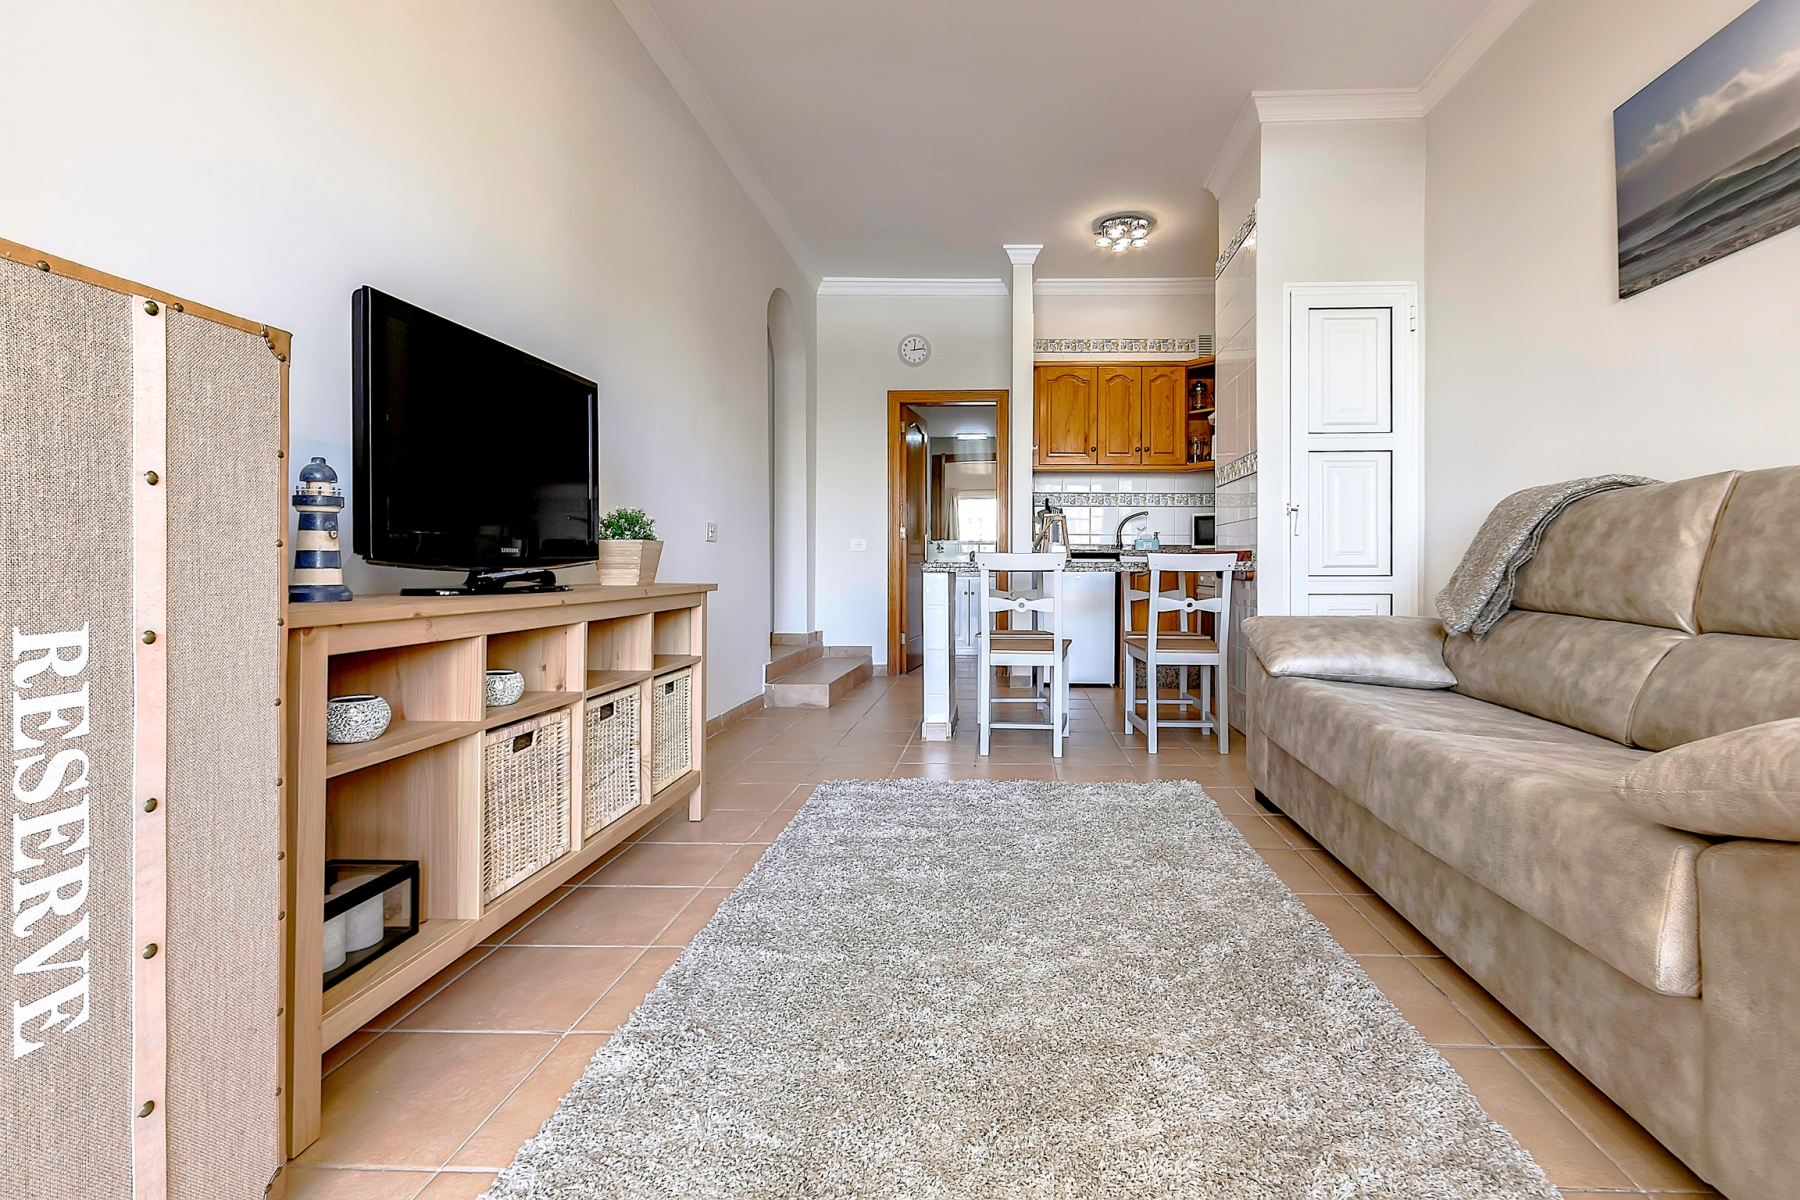 Properties for Sale in Tenerife, Canary Islands, Spain | SylkWayStar Real Estate. 1 bedroom apartment Yucca Park. Image-22590